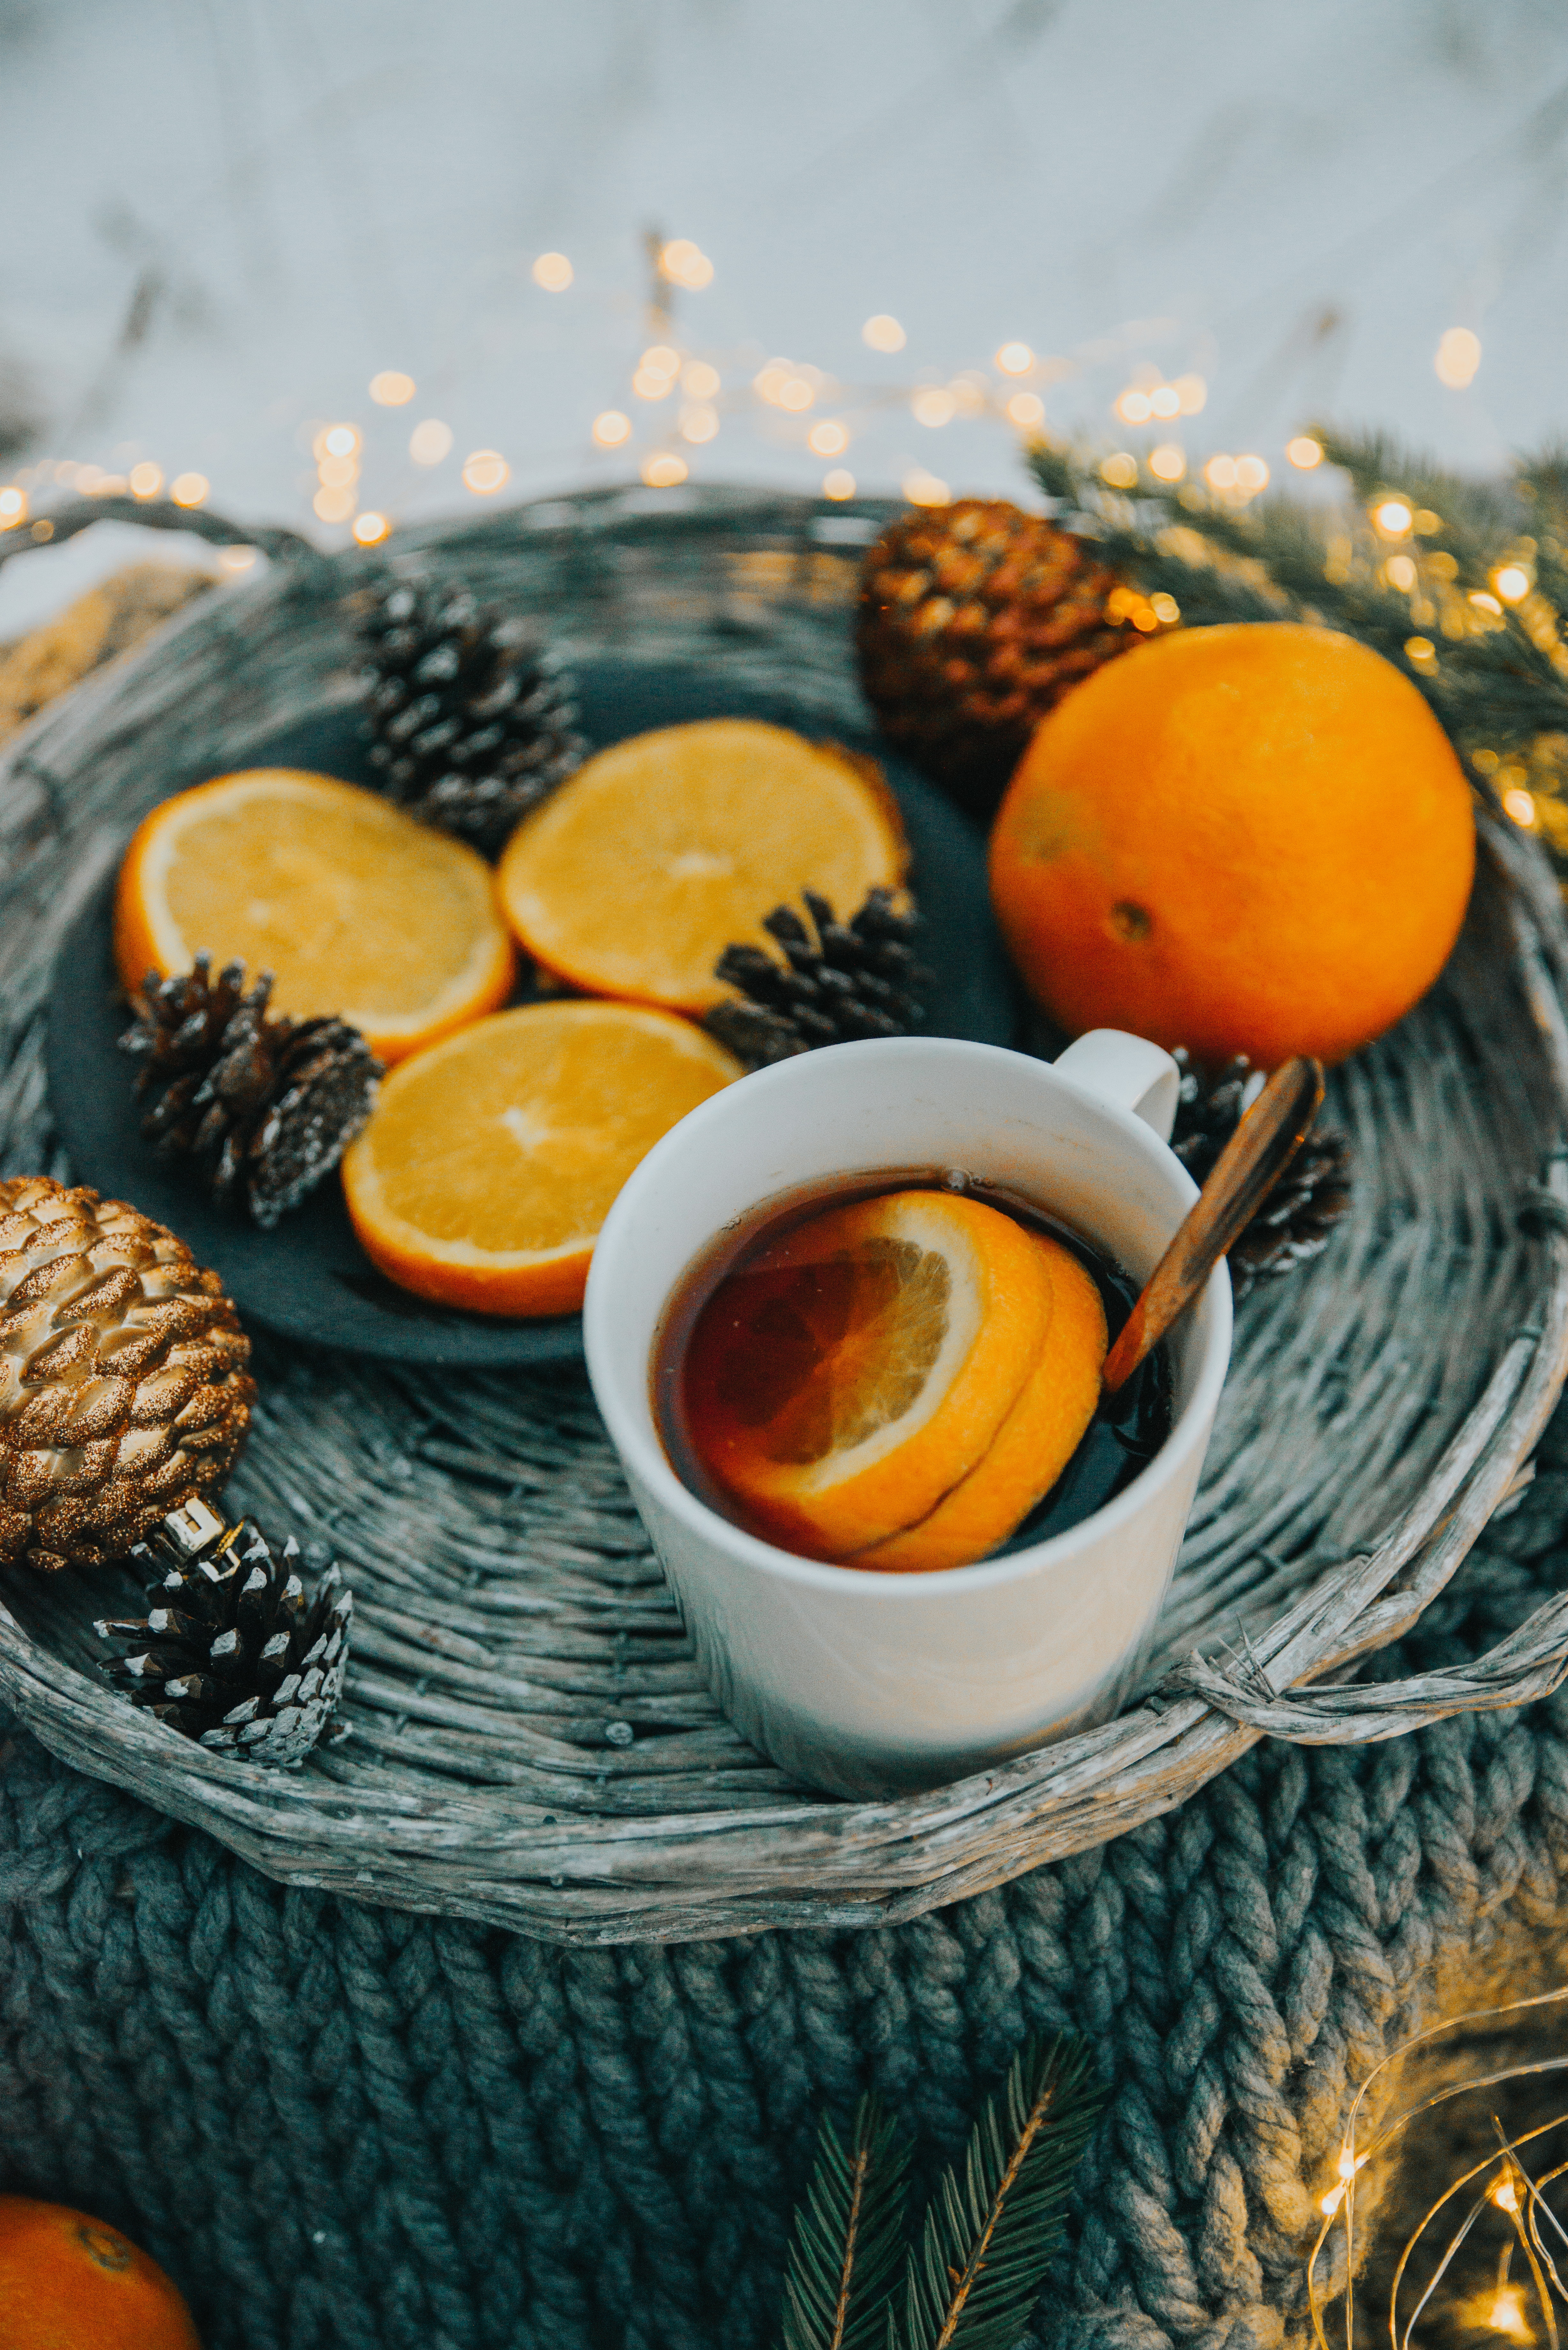 81502 download wallpaper Food, New Year, Oranges, Cup, Christmas, Coziness, Comfort, Mug screensavers and pictures for free